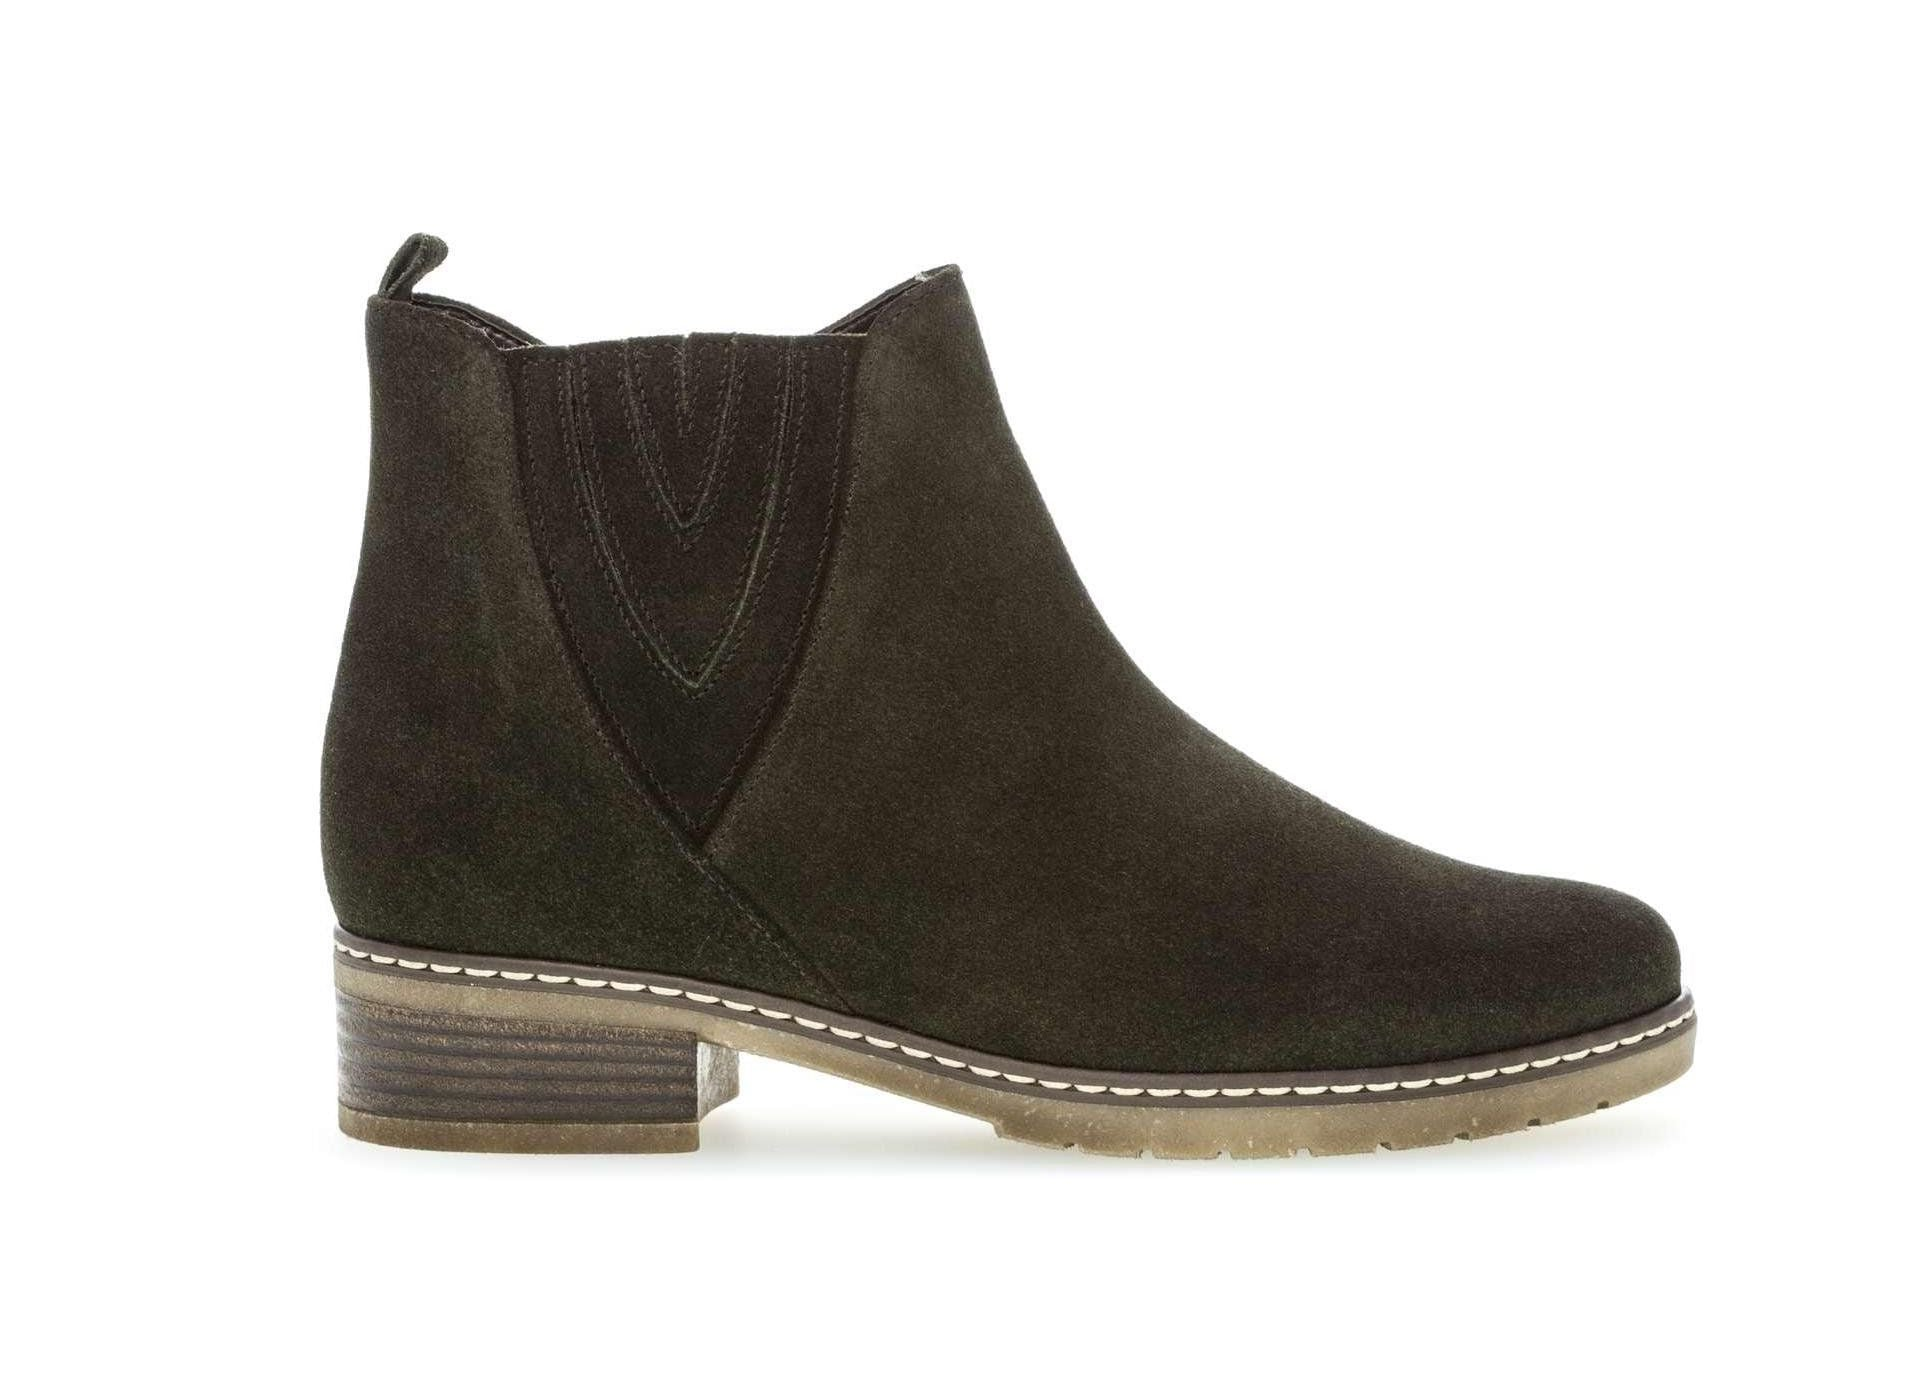 92726.34 - Ankle Boots Green